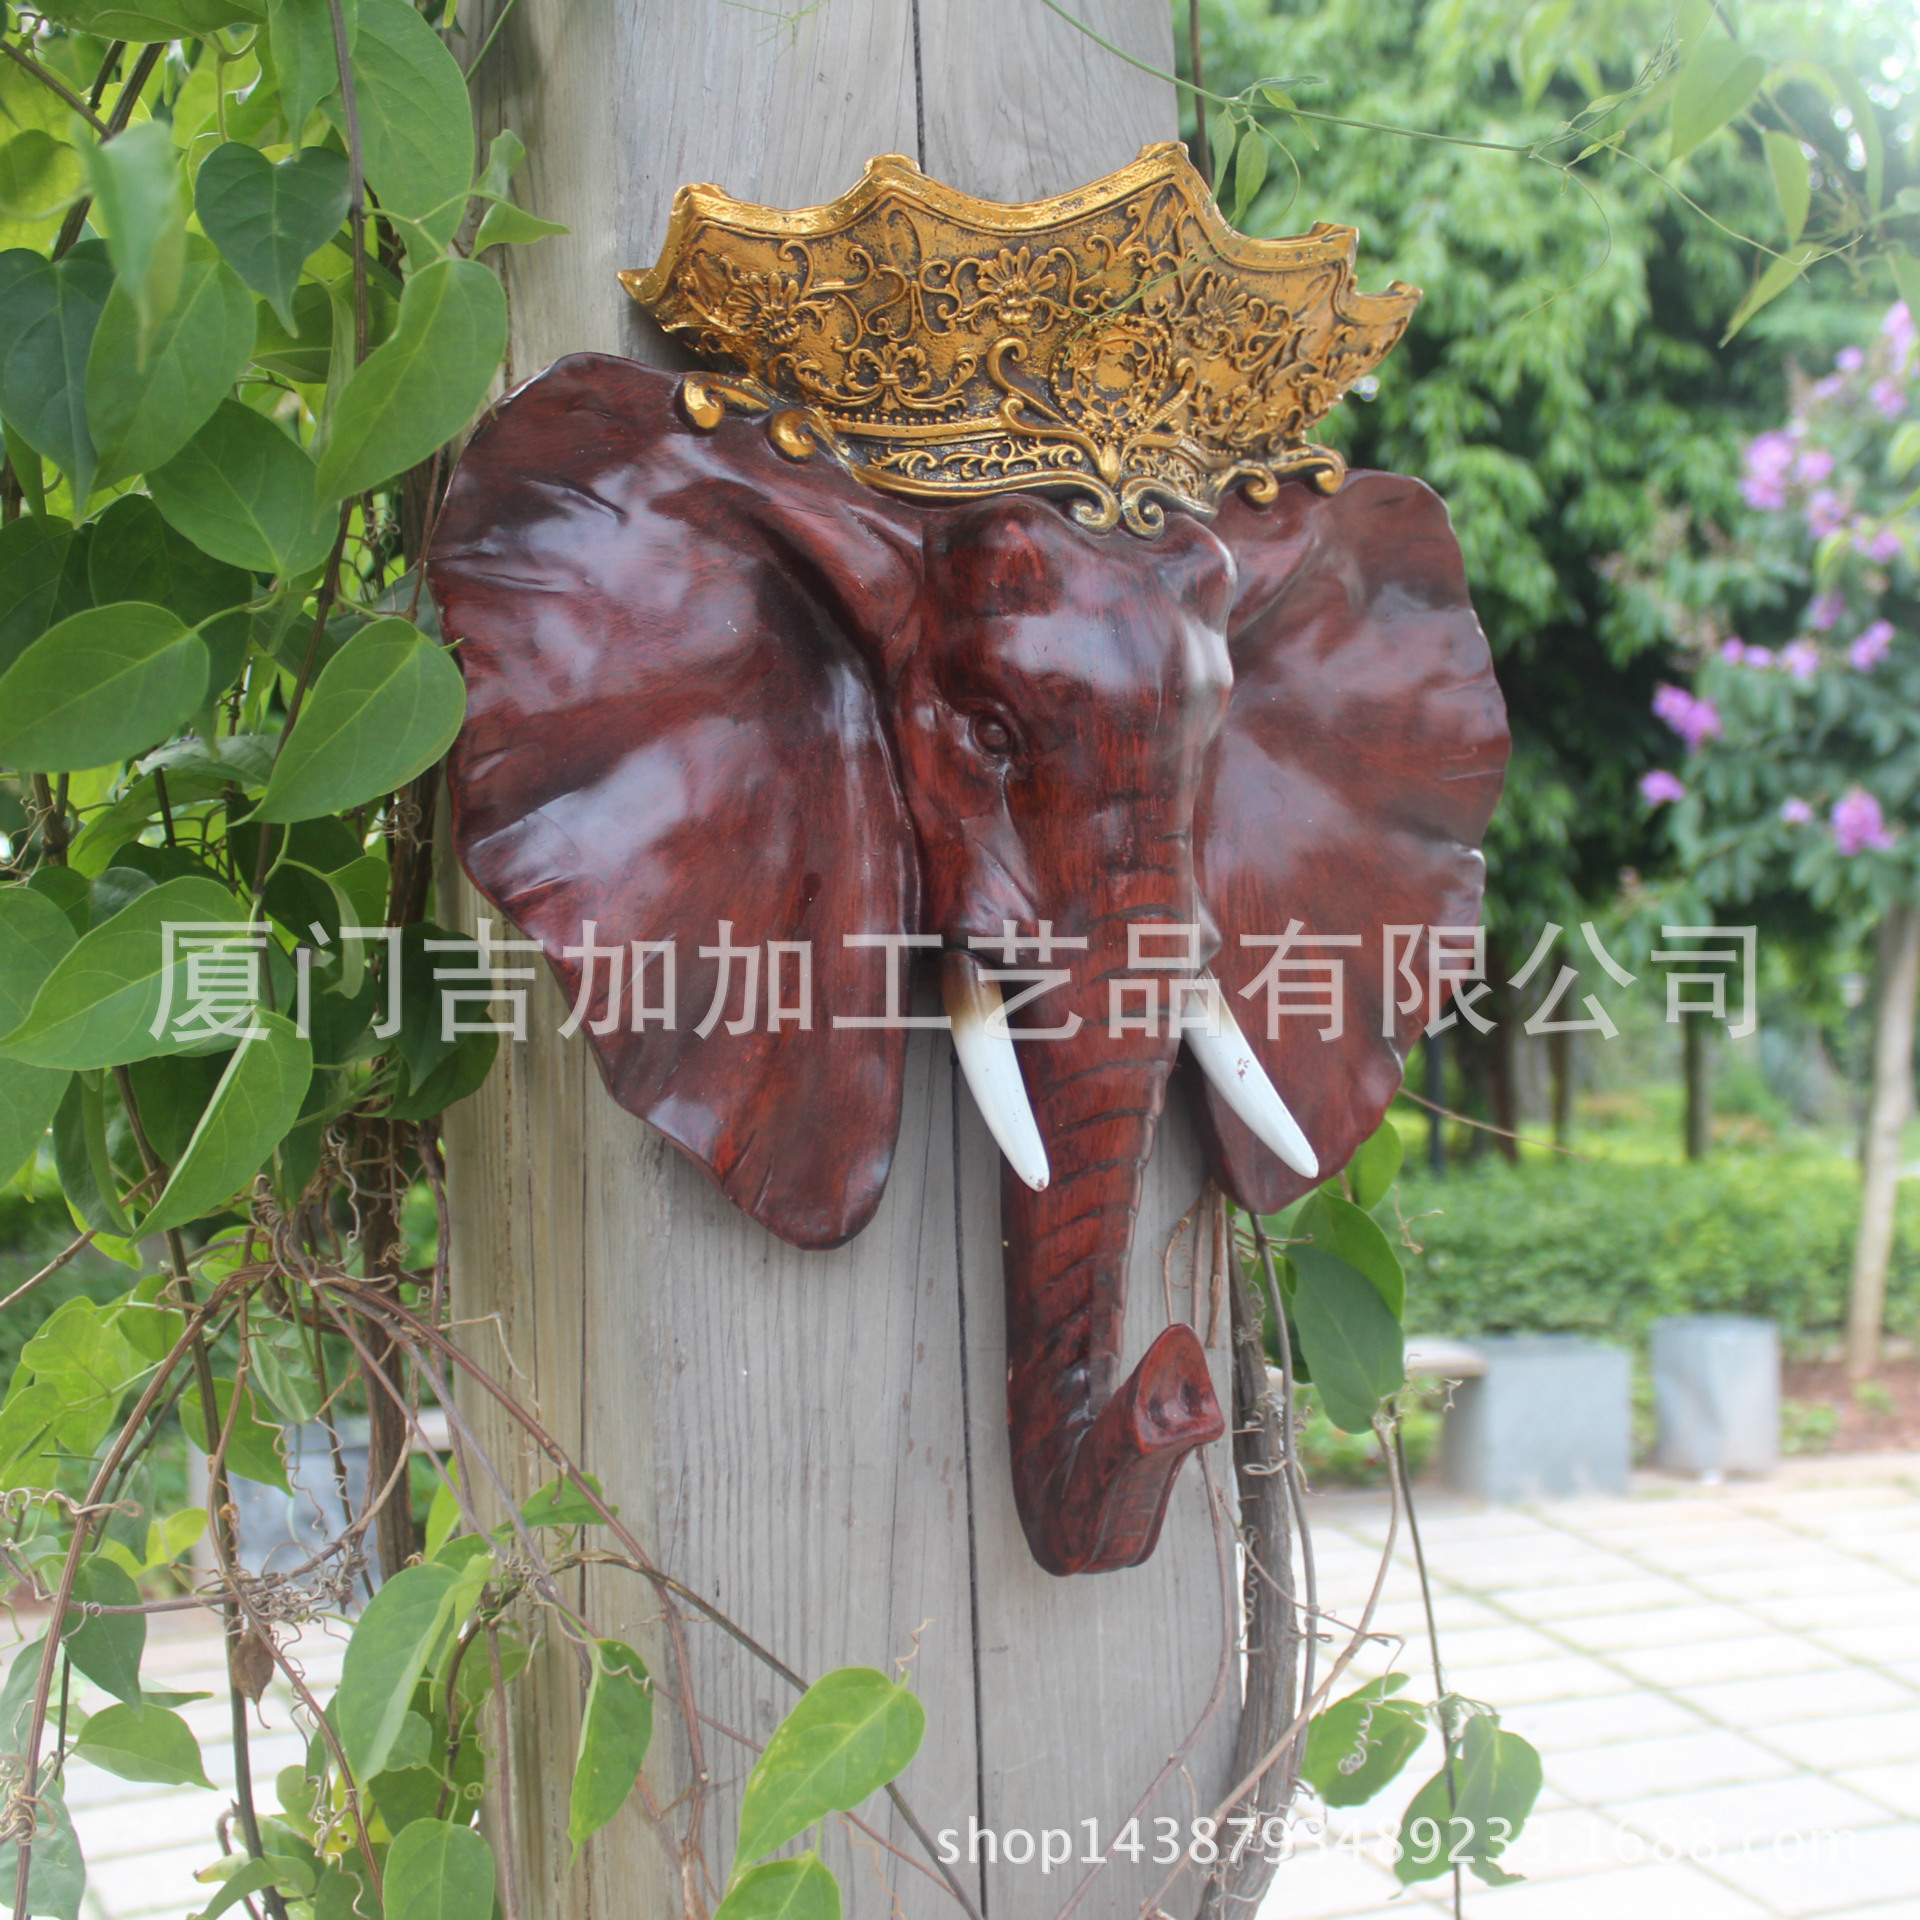 Buy Doll Furnishing Articles Resin Crafts Home Decoration: Online Buy Wholesale Factory Direct Crafts From China